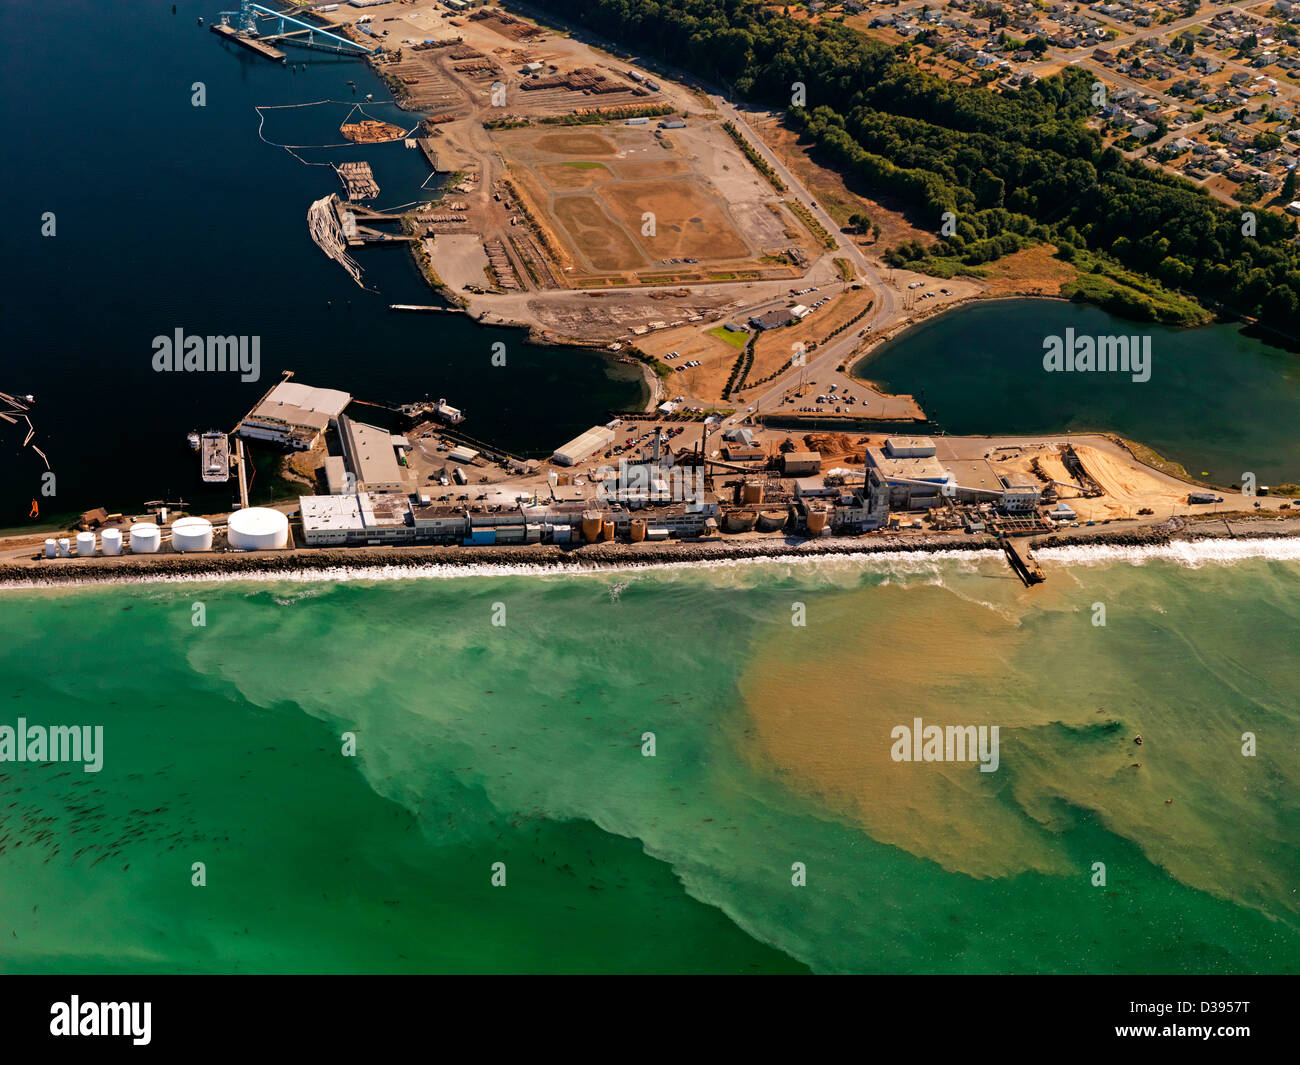 an aerial photo of the Nippon Paper Industries USA Company paper mill at Port Angeles in Washington State USA - Stock Image